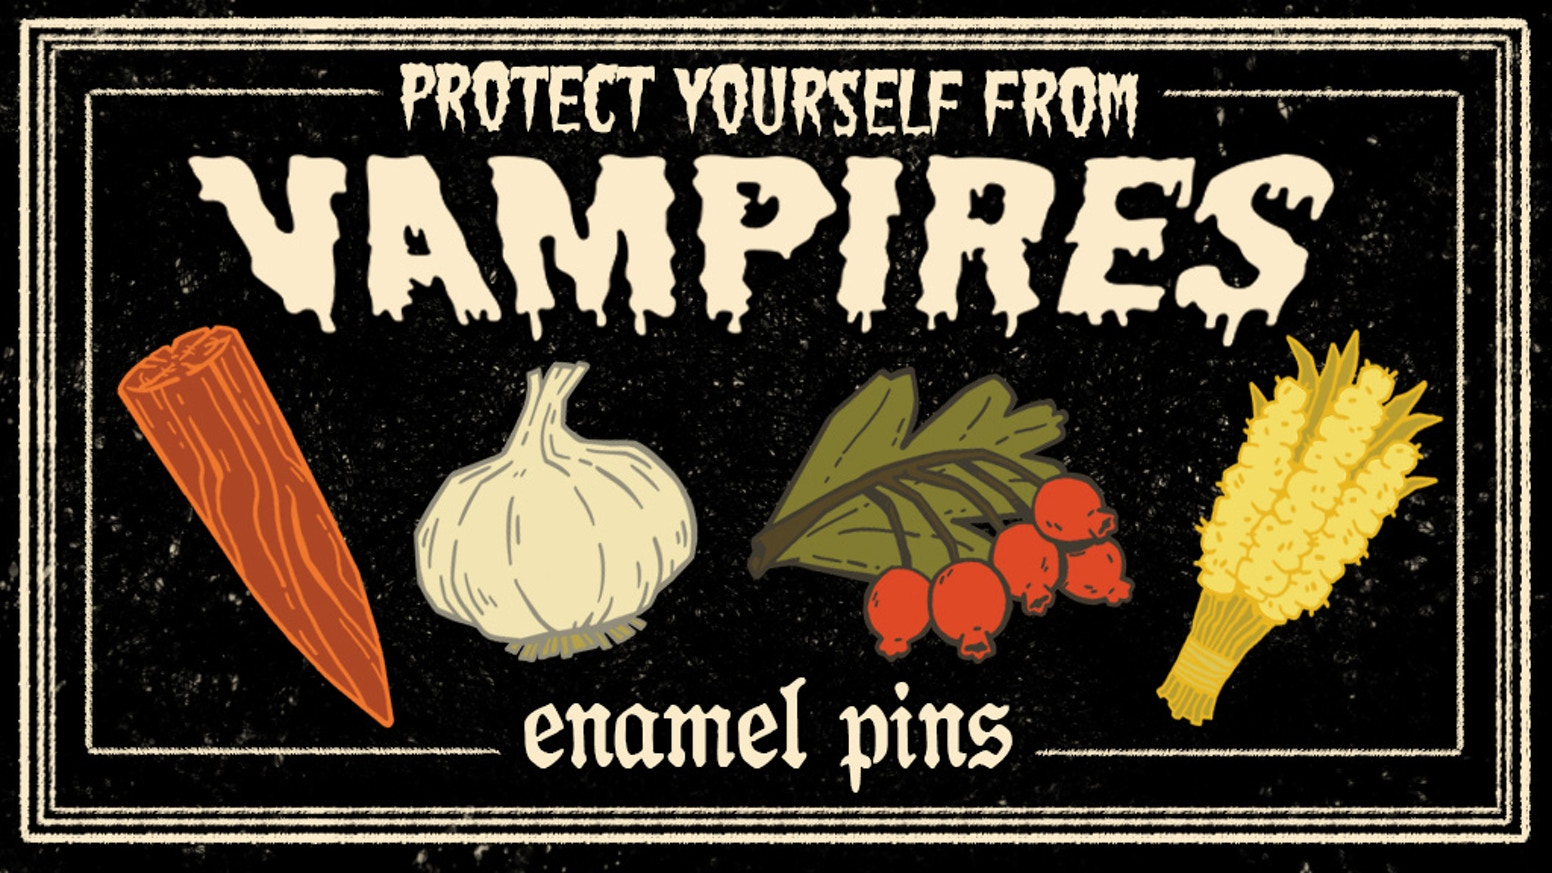 Ward off blood sucking fiends with enamel pins of apotropaic items from vampire folklore.